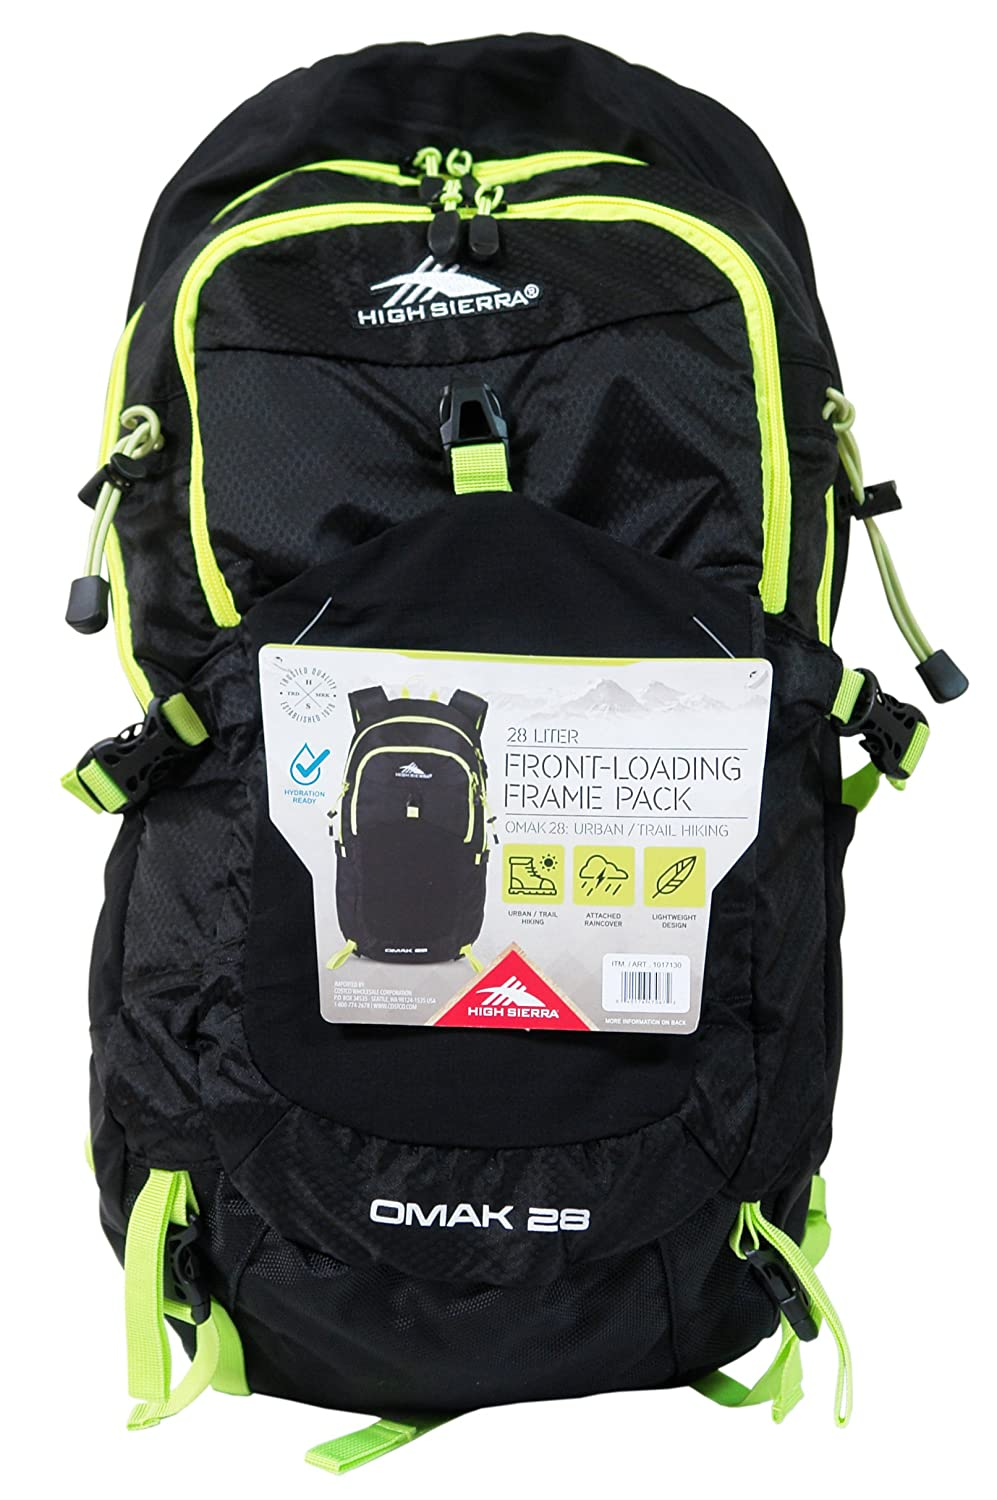 High Sierra 28 Liter Front-Loading Frame Pack - OMAK 28 Urban/Trail Hiking Hydration Access Ready